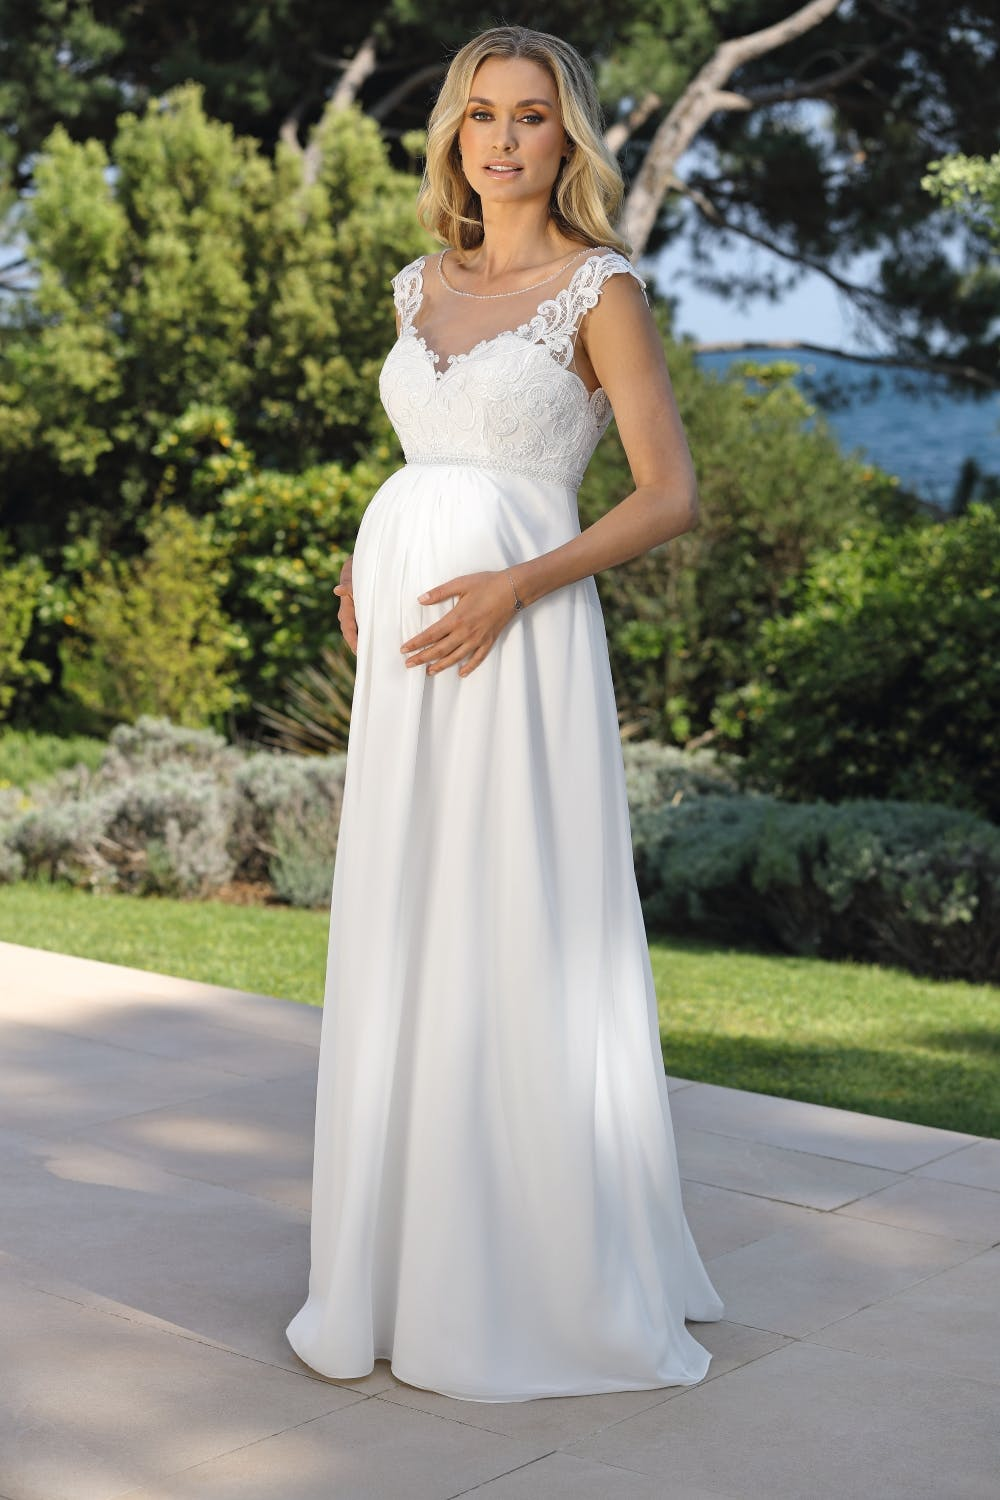 maternity-wedding-dress-with-illusion-neckline